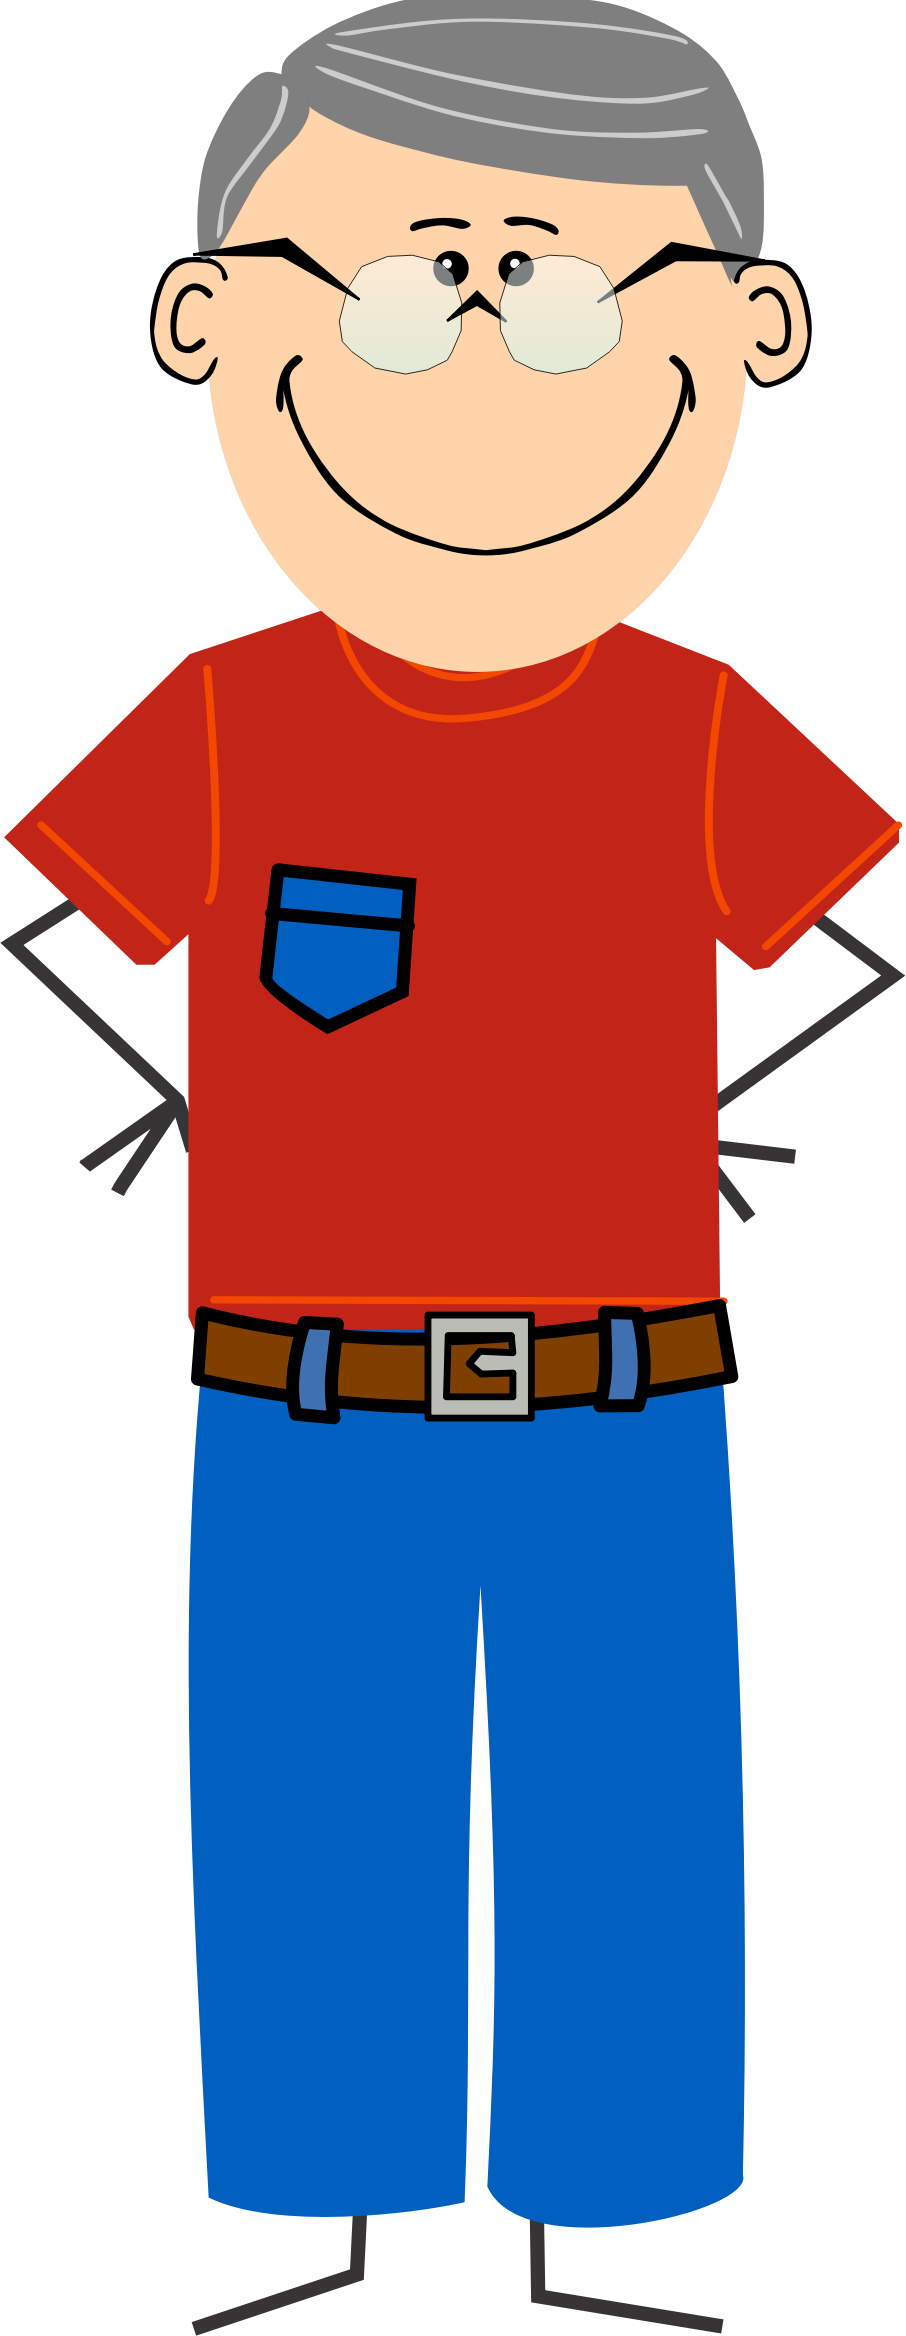 Jeans t pencil and. Clipart shirt cartoon